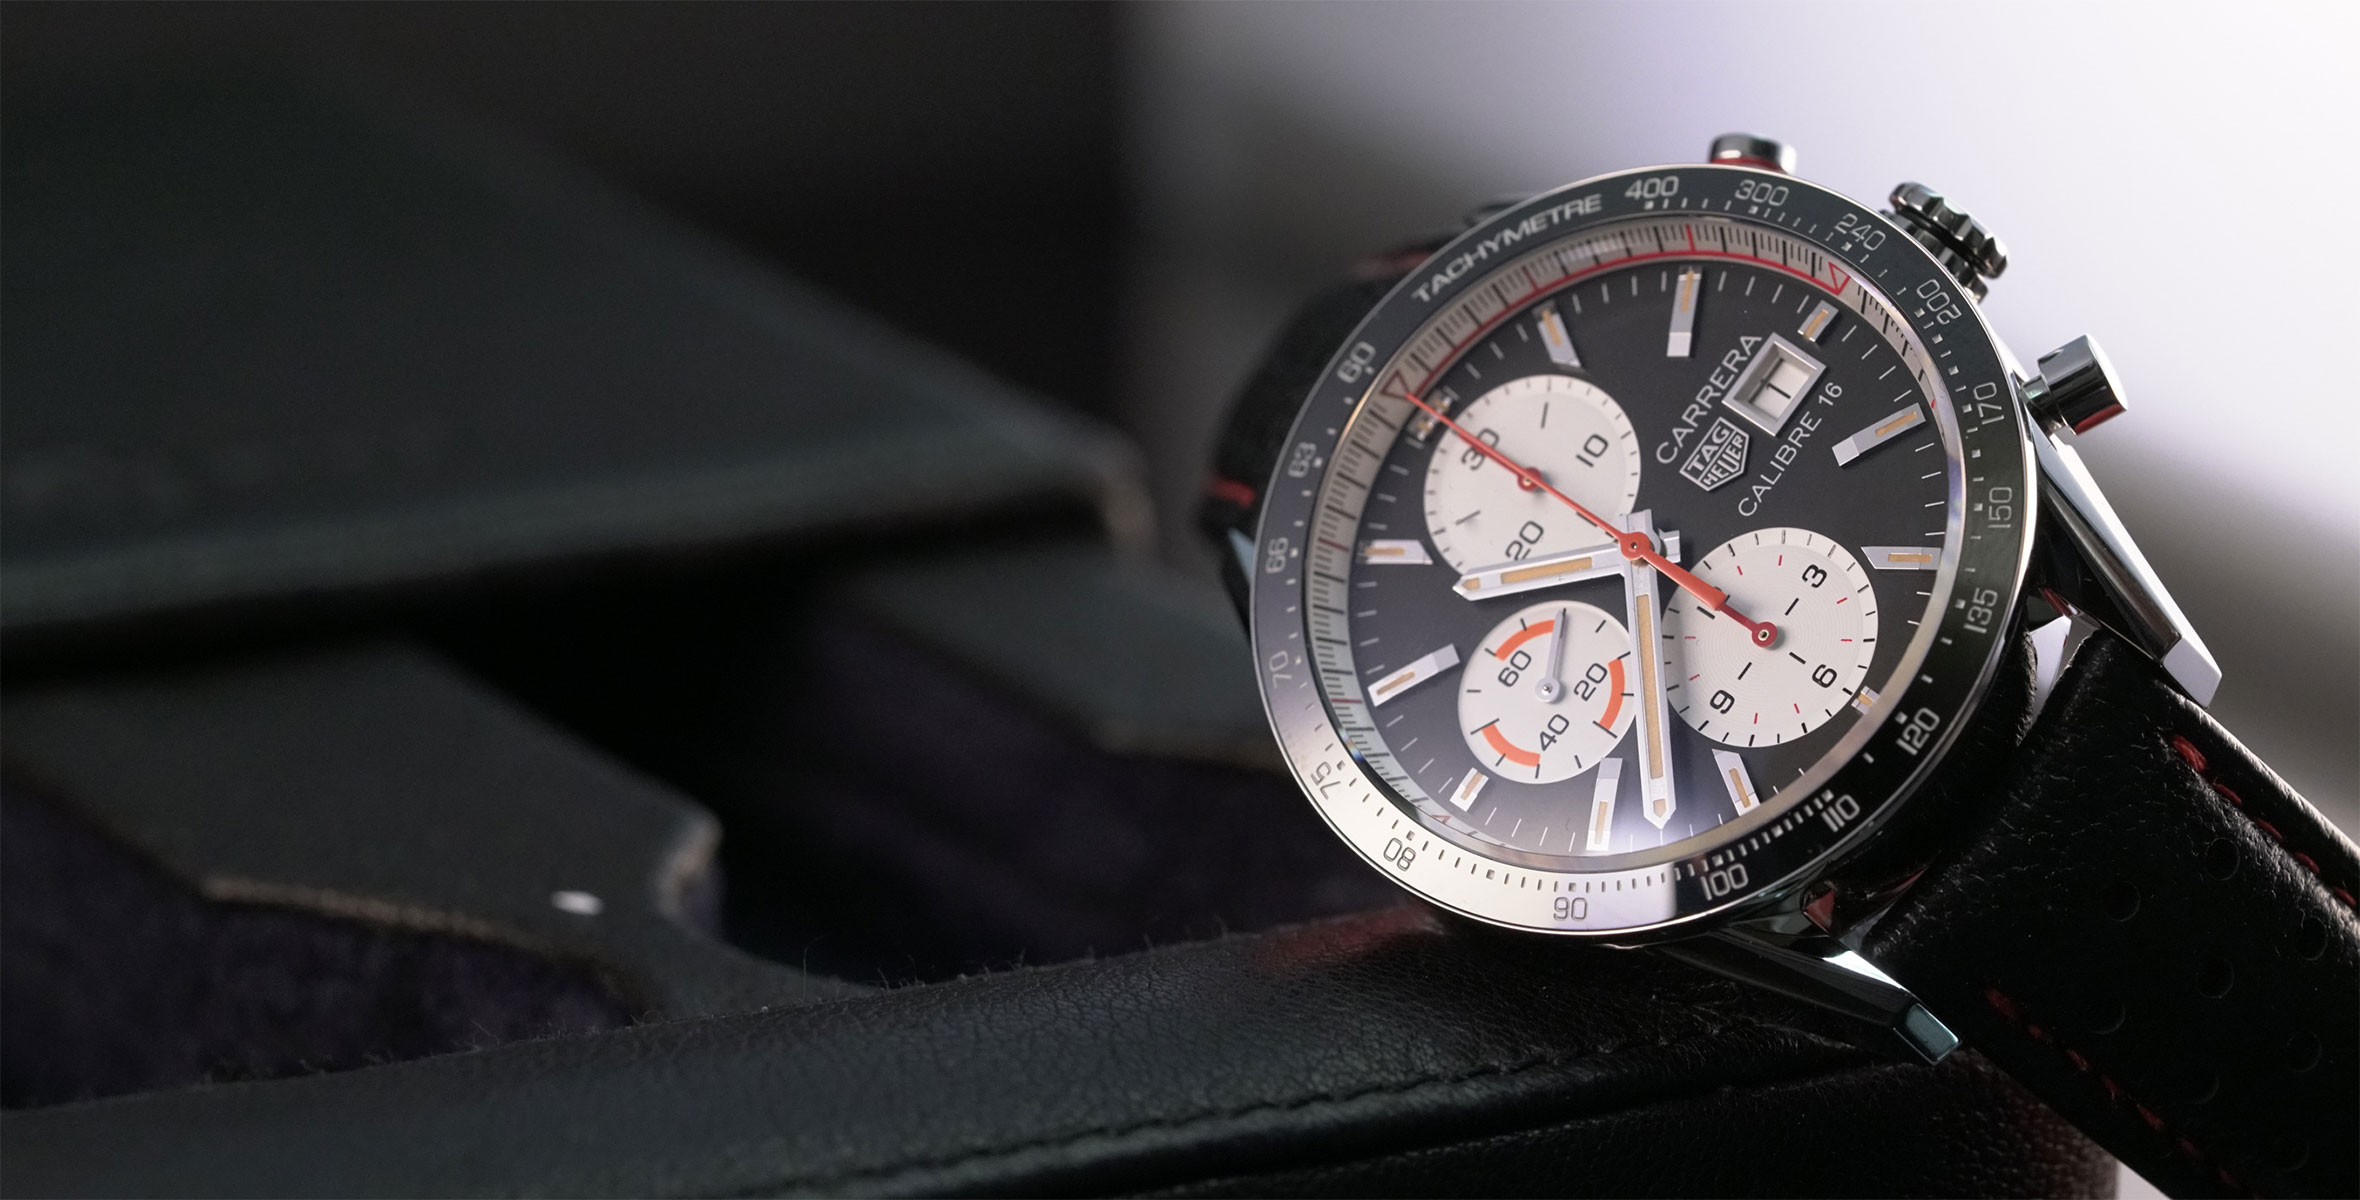 HANDS-ON: The TAG Heuer Carrera Calibre 16 Chronograph